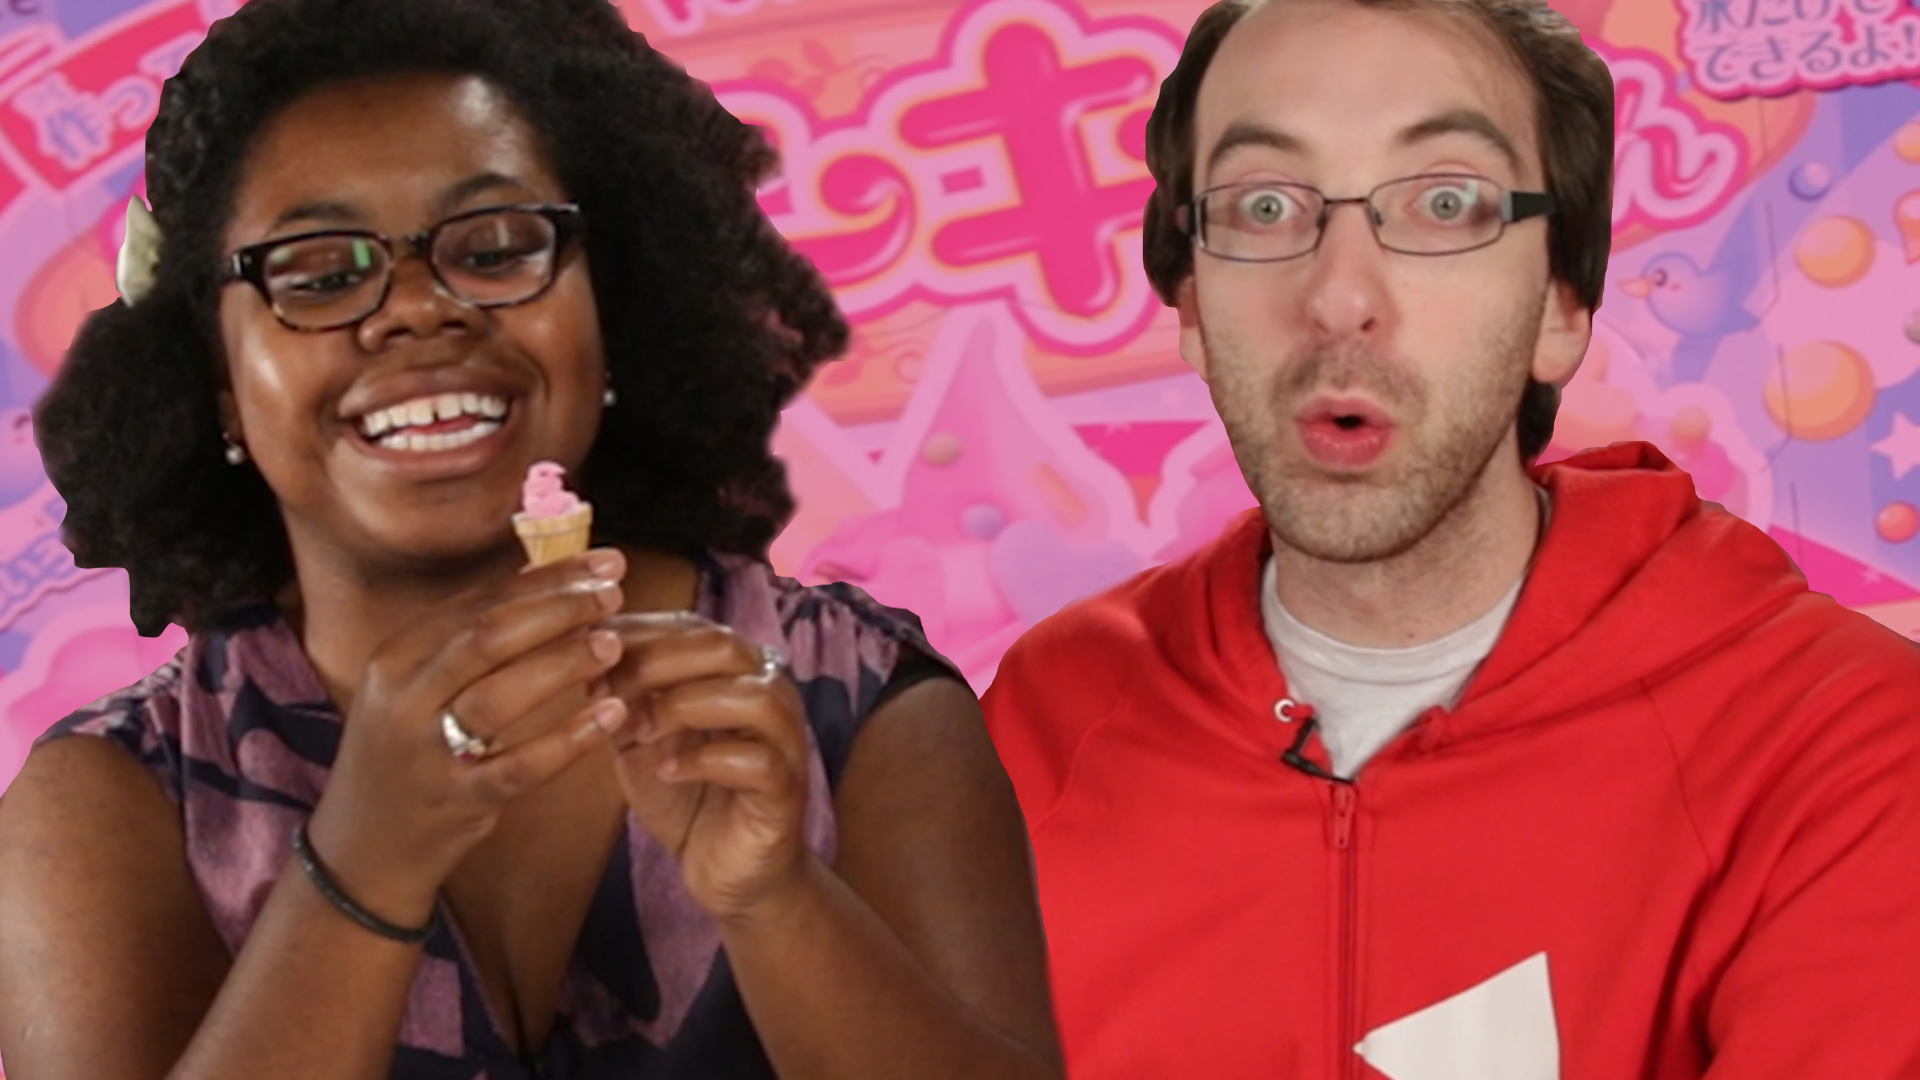 Americans Tried Constructable Japanese Candy, And Things Got Messy